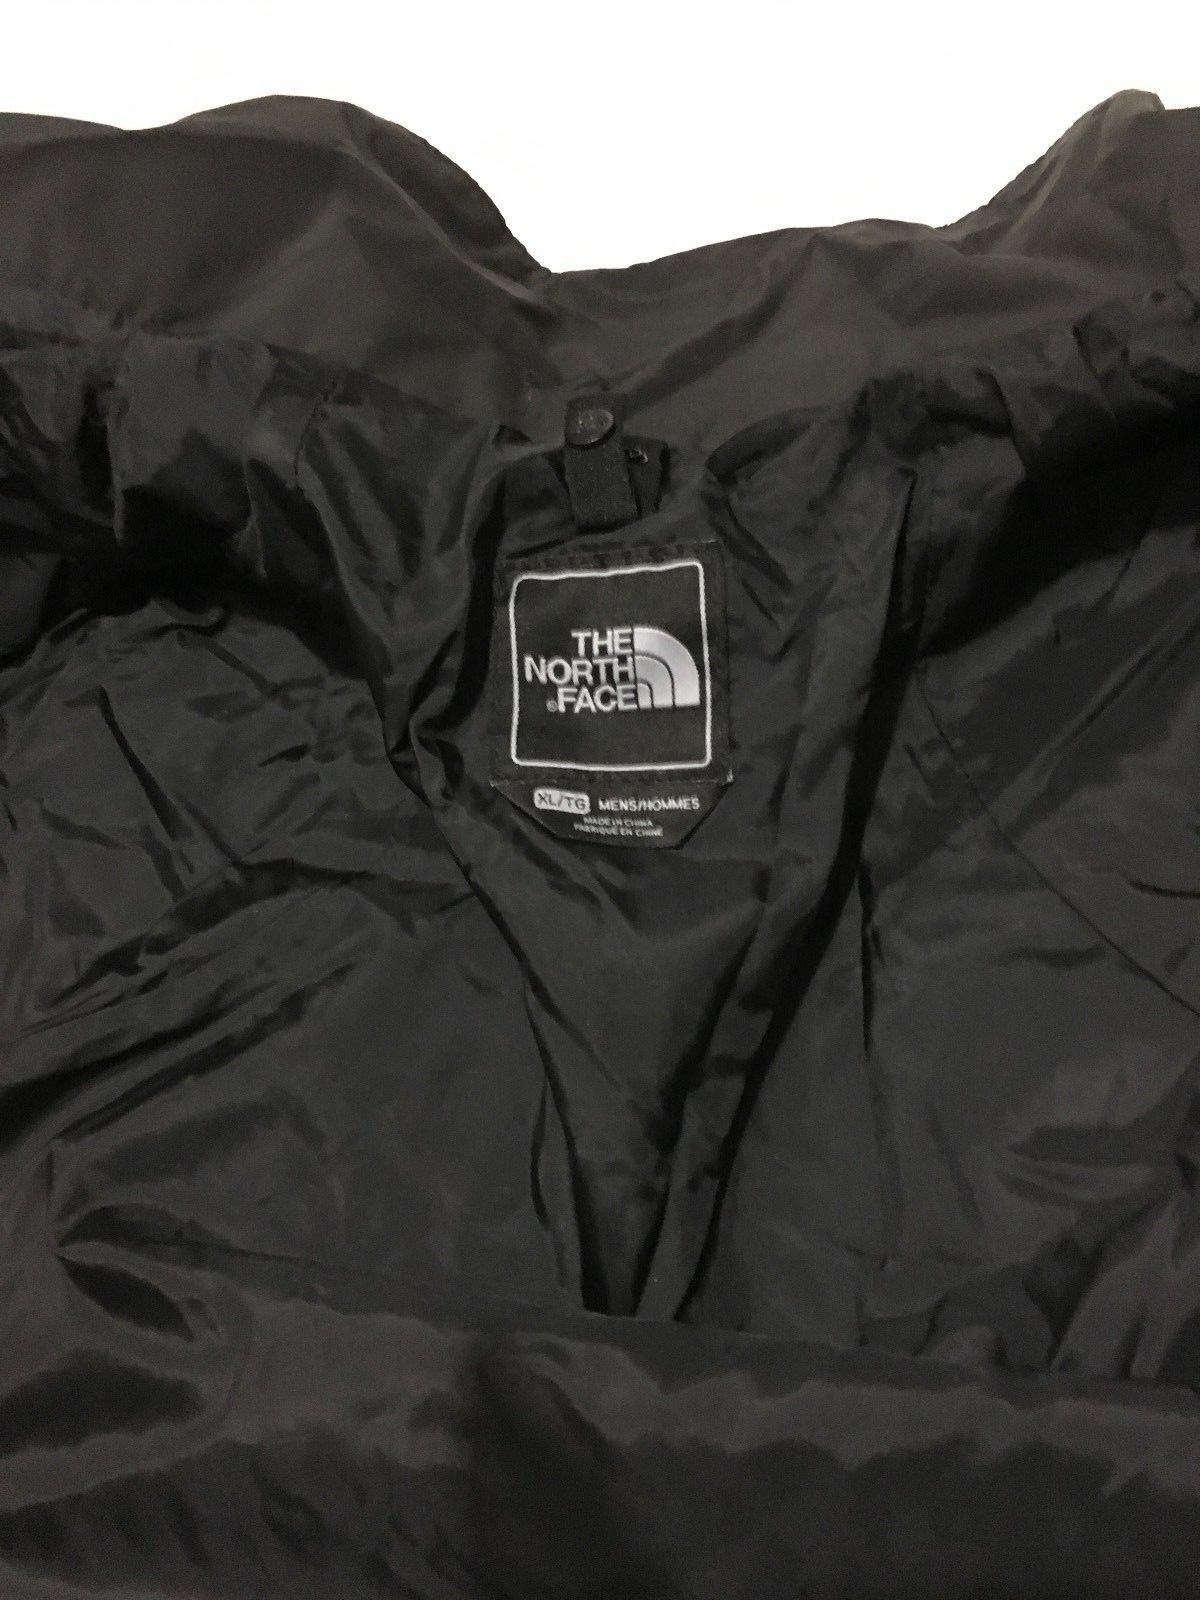 The North Face Hyvent Windbreaker Jacket and 50 similar items